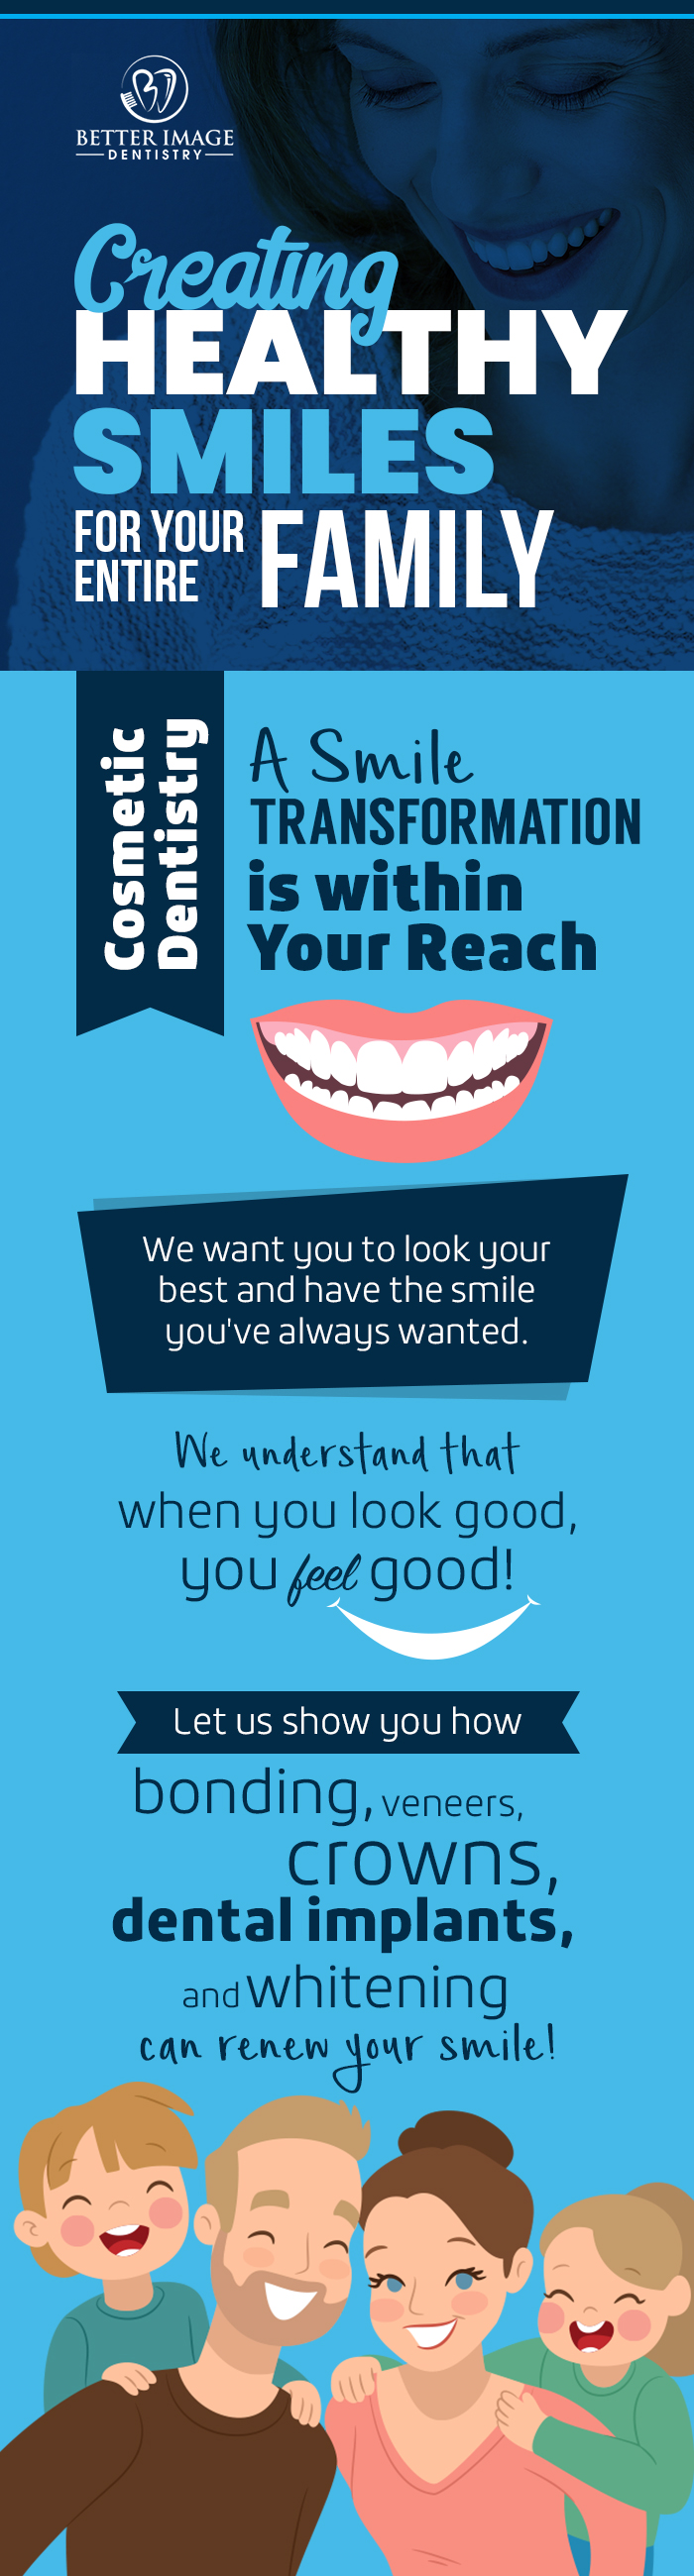 Better Image Dentistry – The Best Cosmetic Dentistry Clinic in Bridgewater, NJ